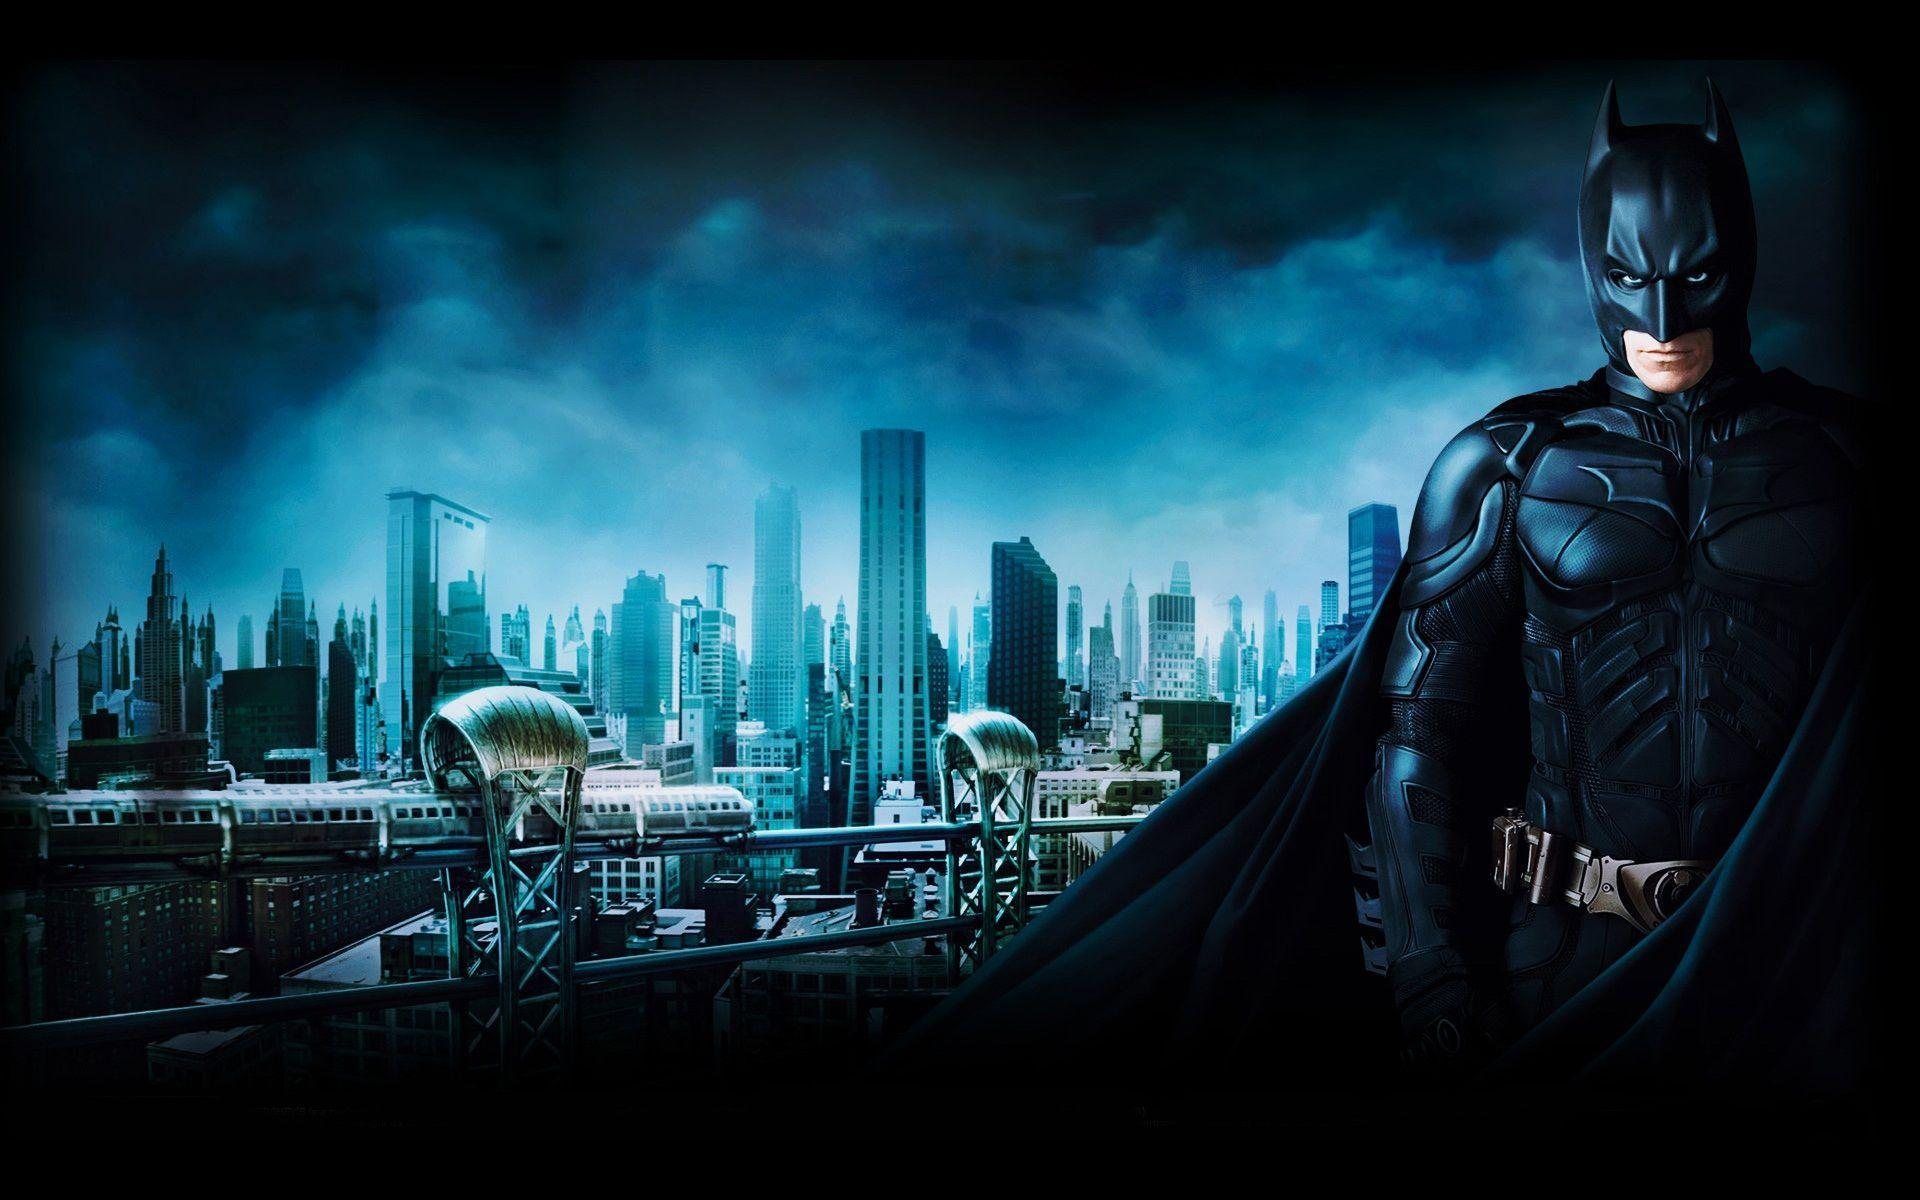 Batman Desktop HD Wallpaper | Batman Images Free | New Wallpapers